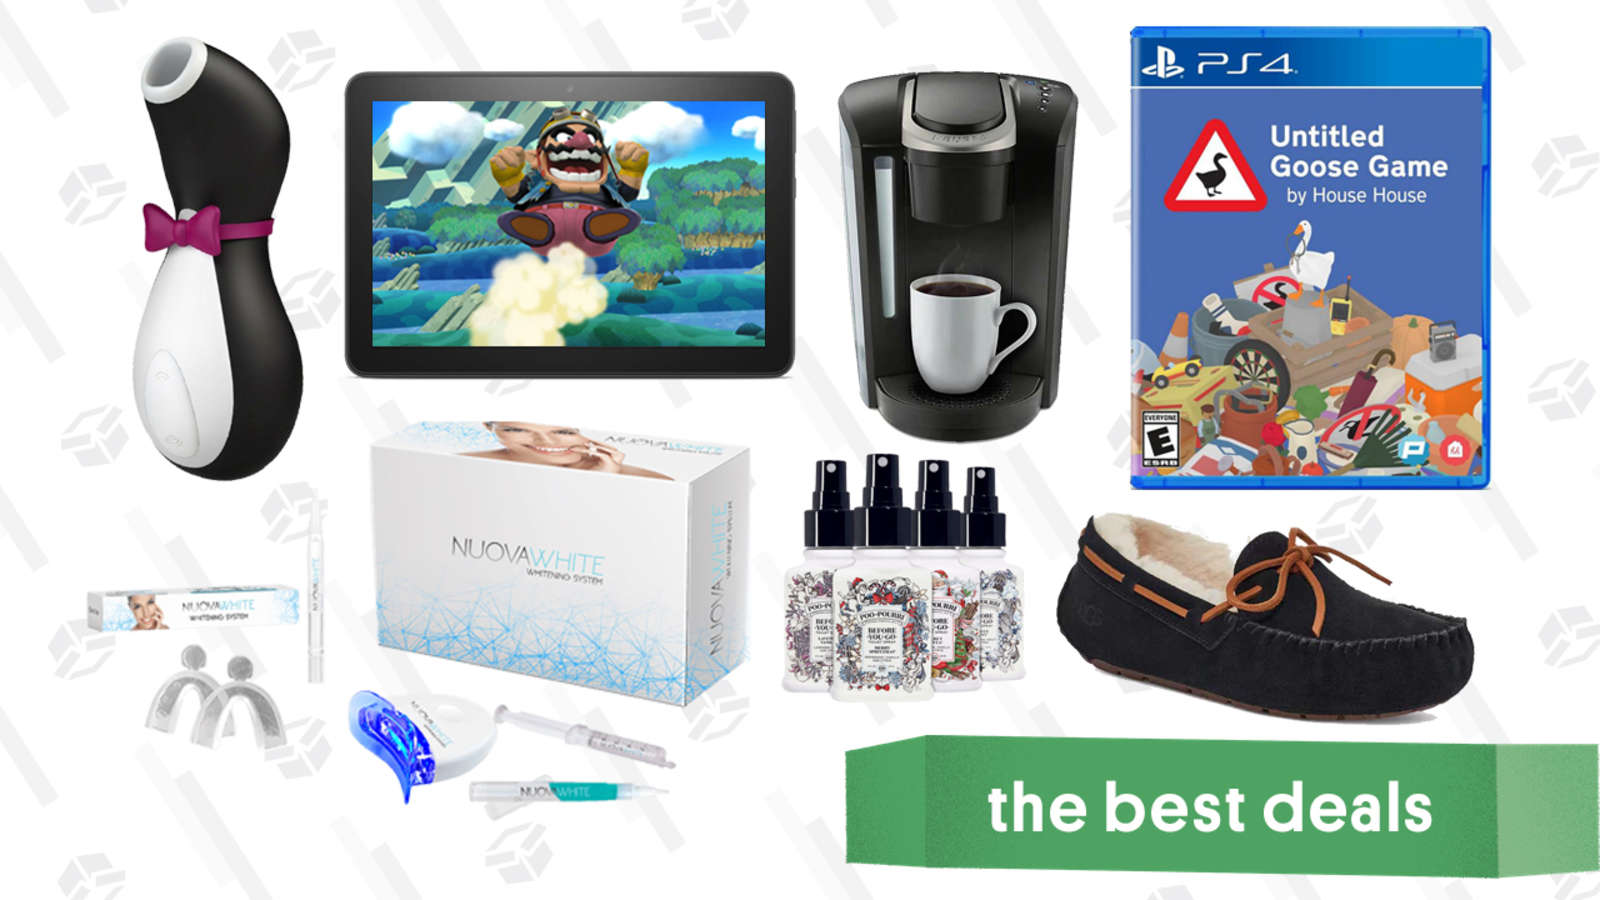 Friday's Best Deals: Amazon Fire HD 8 Tablet, 512GB MicroSD Card, UGG Slippers, Satisfyer Penguin, Keurig K-Select, Nuovawhite Teeth Whitening Kit, and More